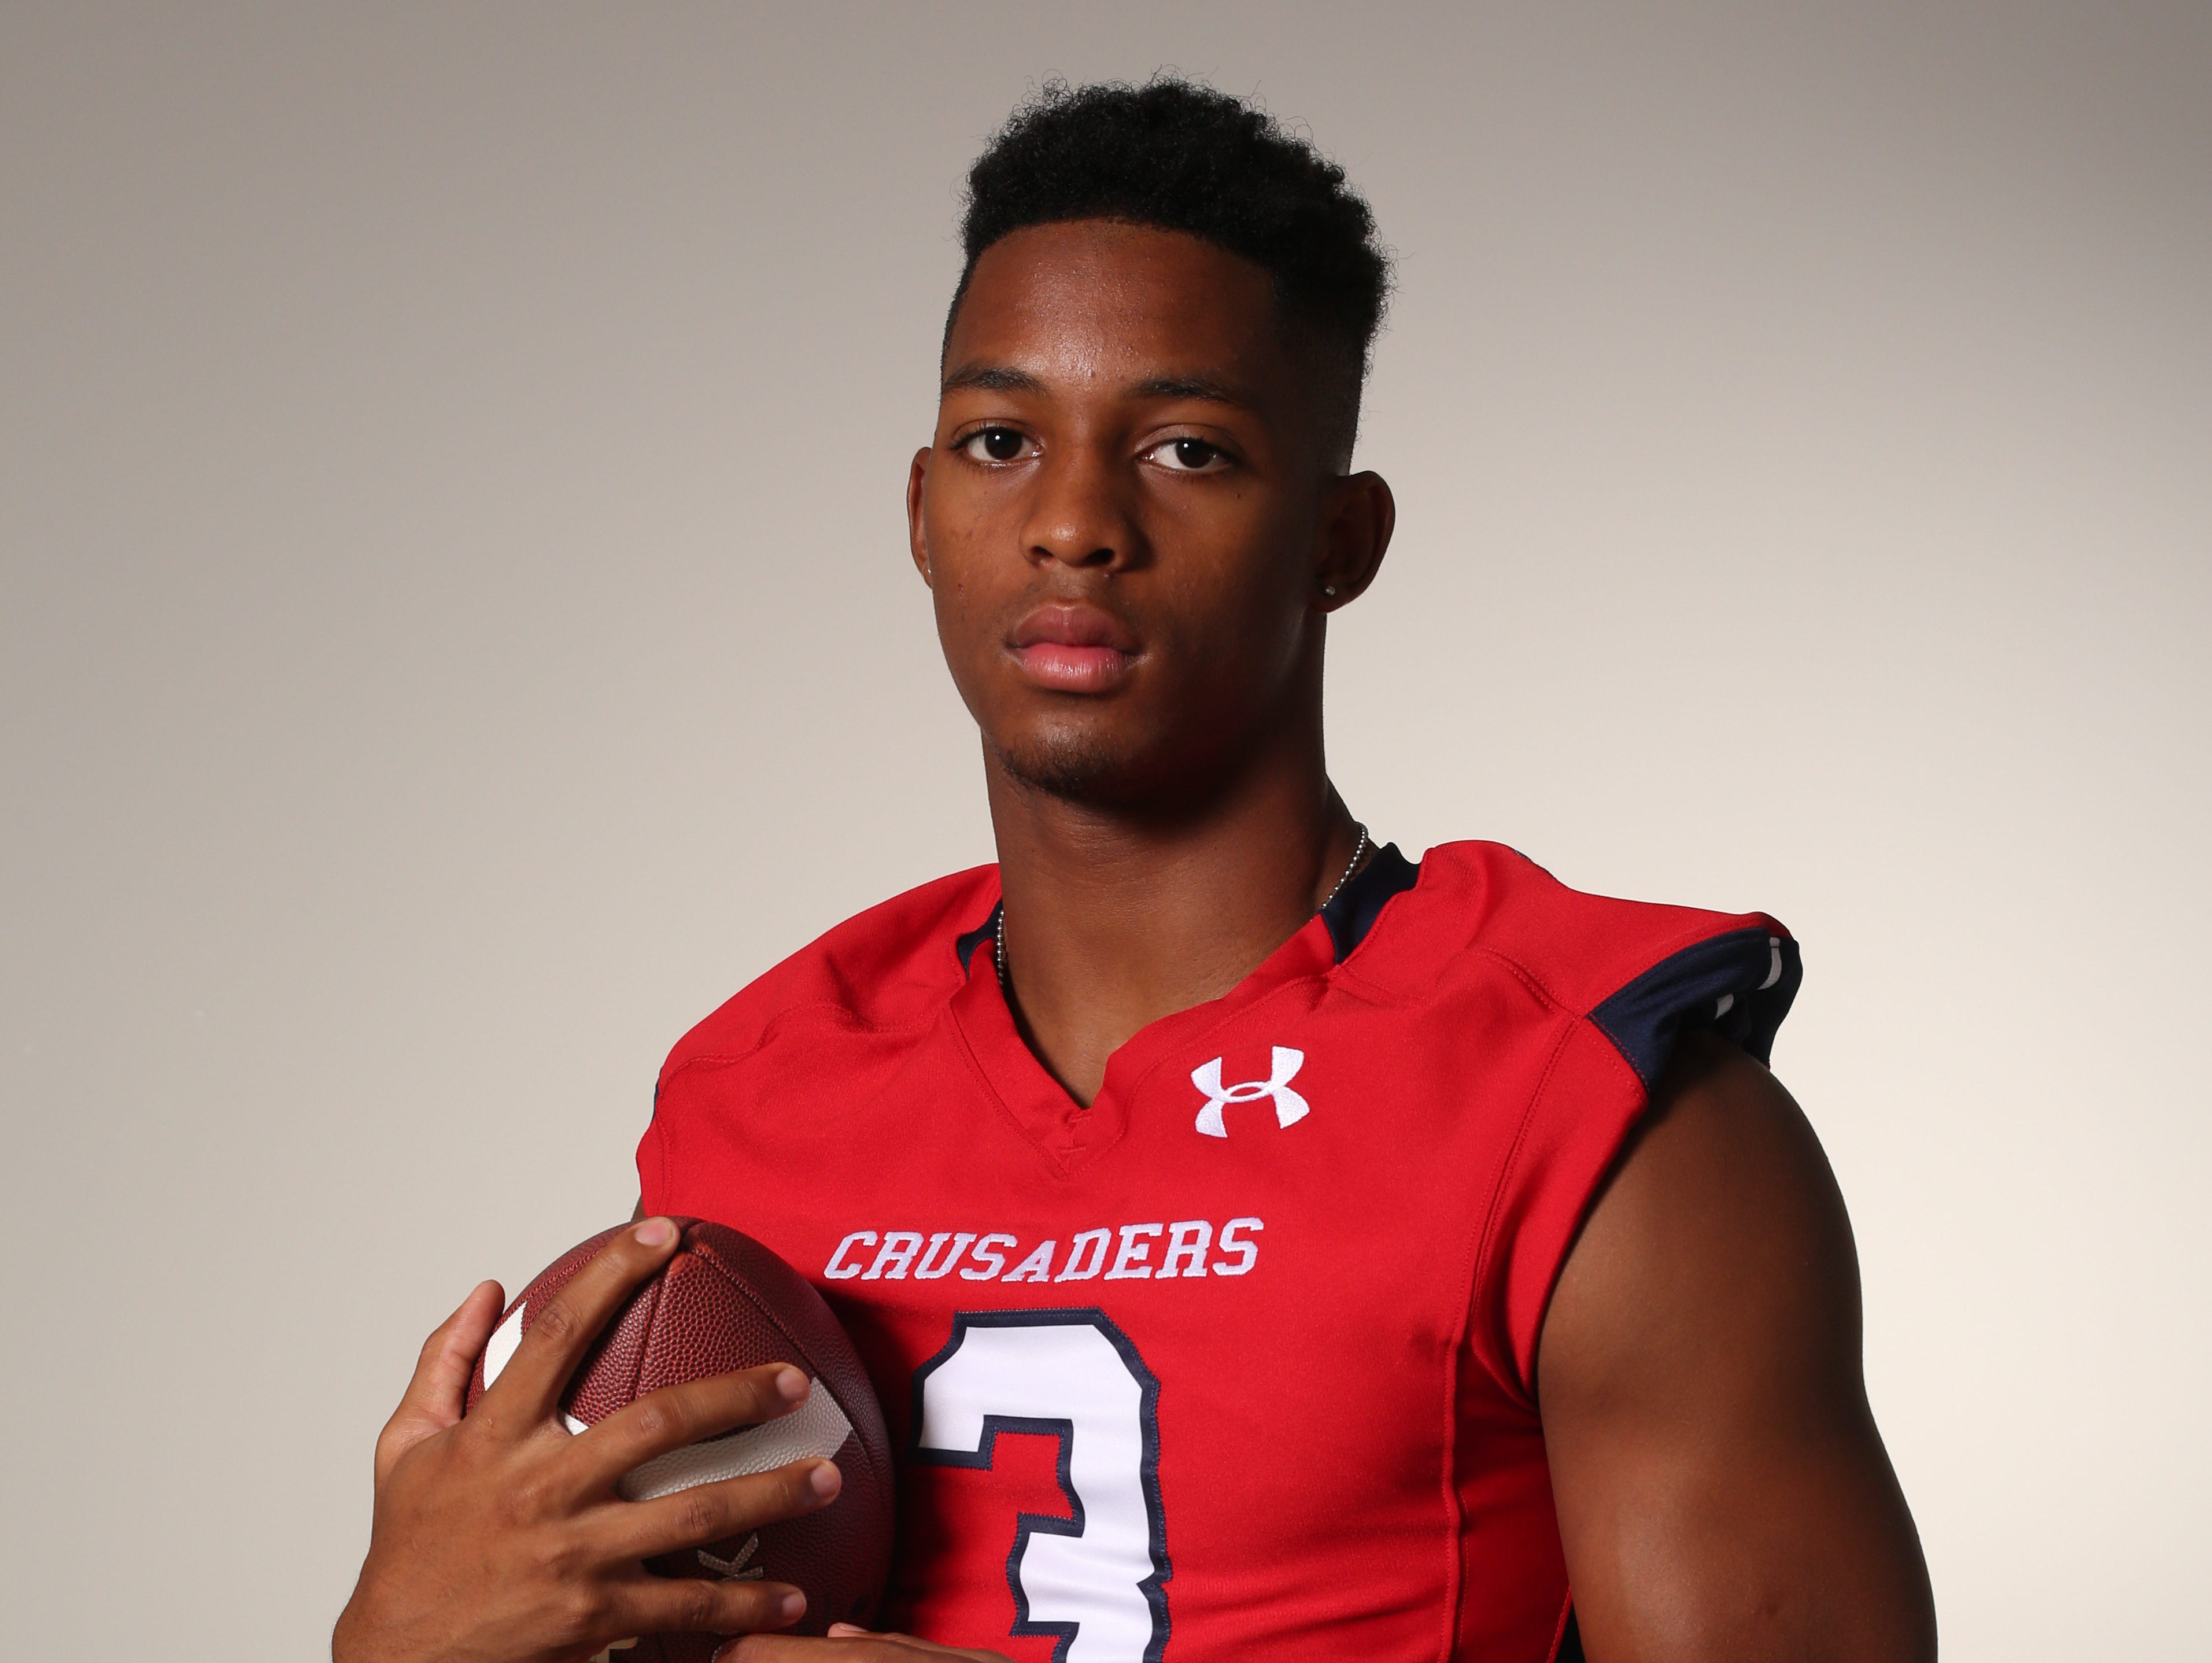 DeVante Reid, a wide receiver and defensive back with the Archbishop Stepinac High School football team, photographed Aug. 19, 2016.